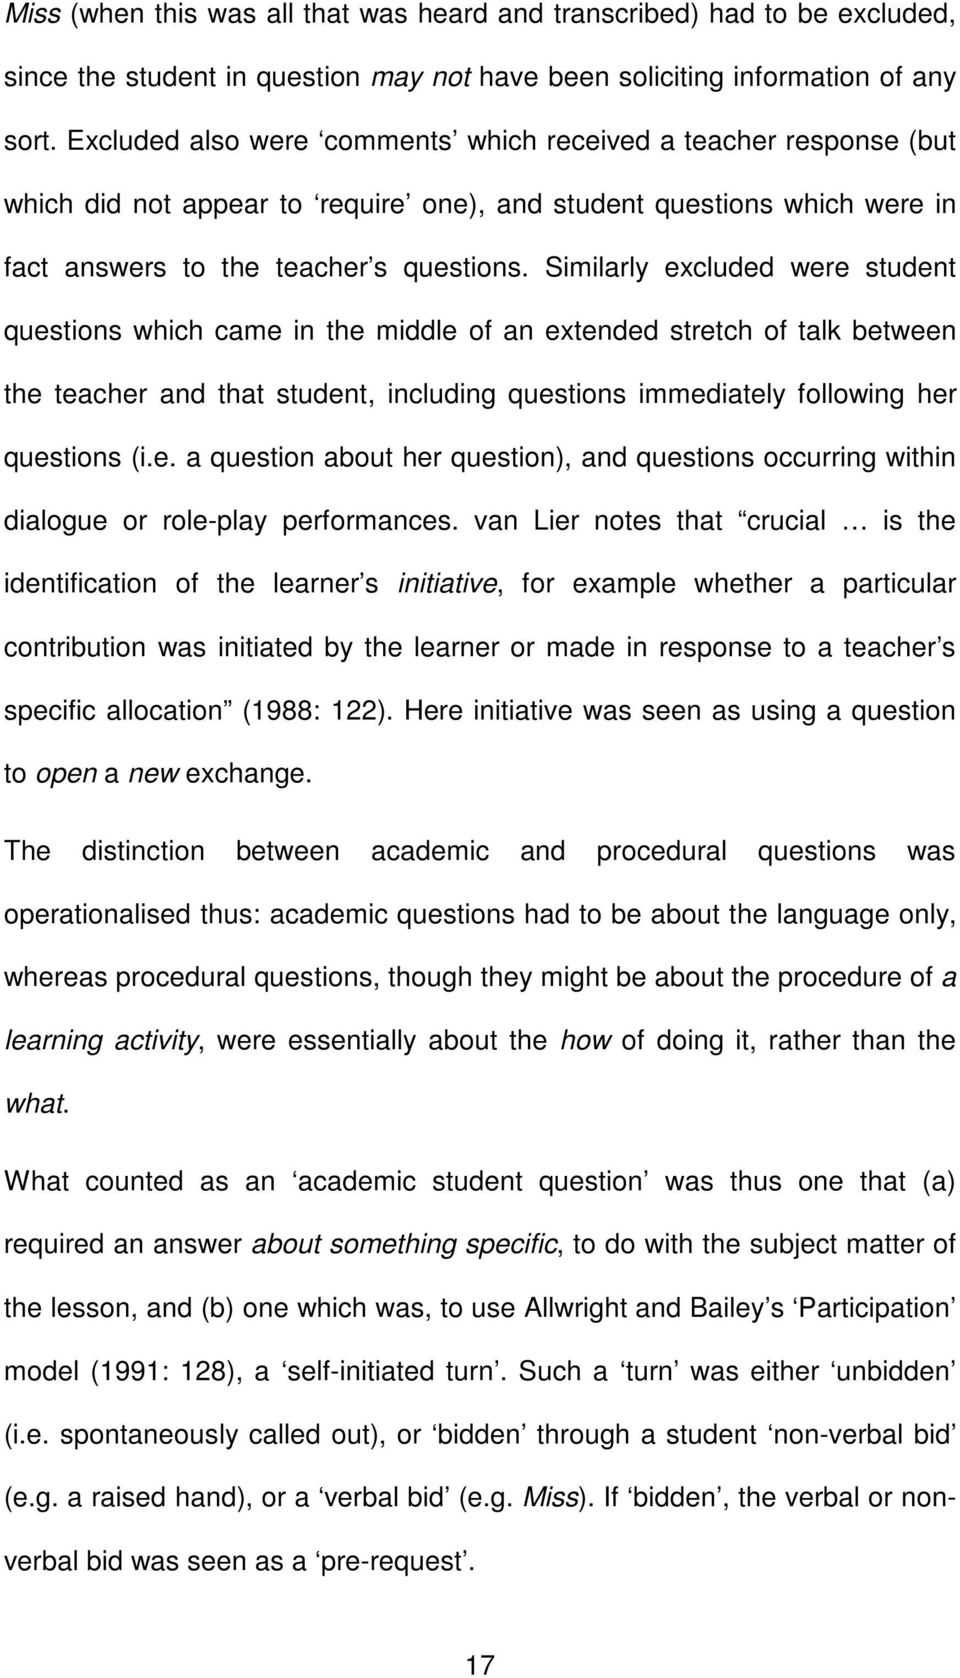 Similarly excluded were student questions which came in the middle of an extended stretch of talk between the teacher and that student, including questions immediately following her questions (i.e. a question about her question), and questions occurring within dialogue or role-play performances.